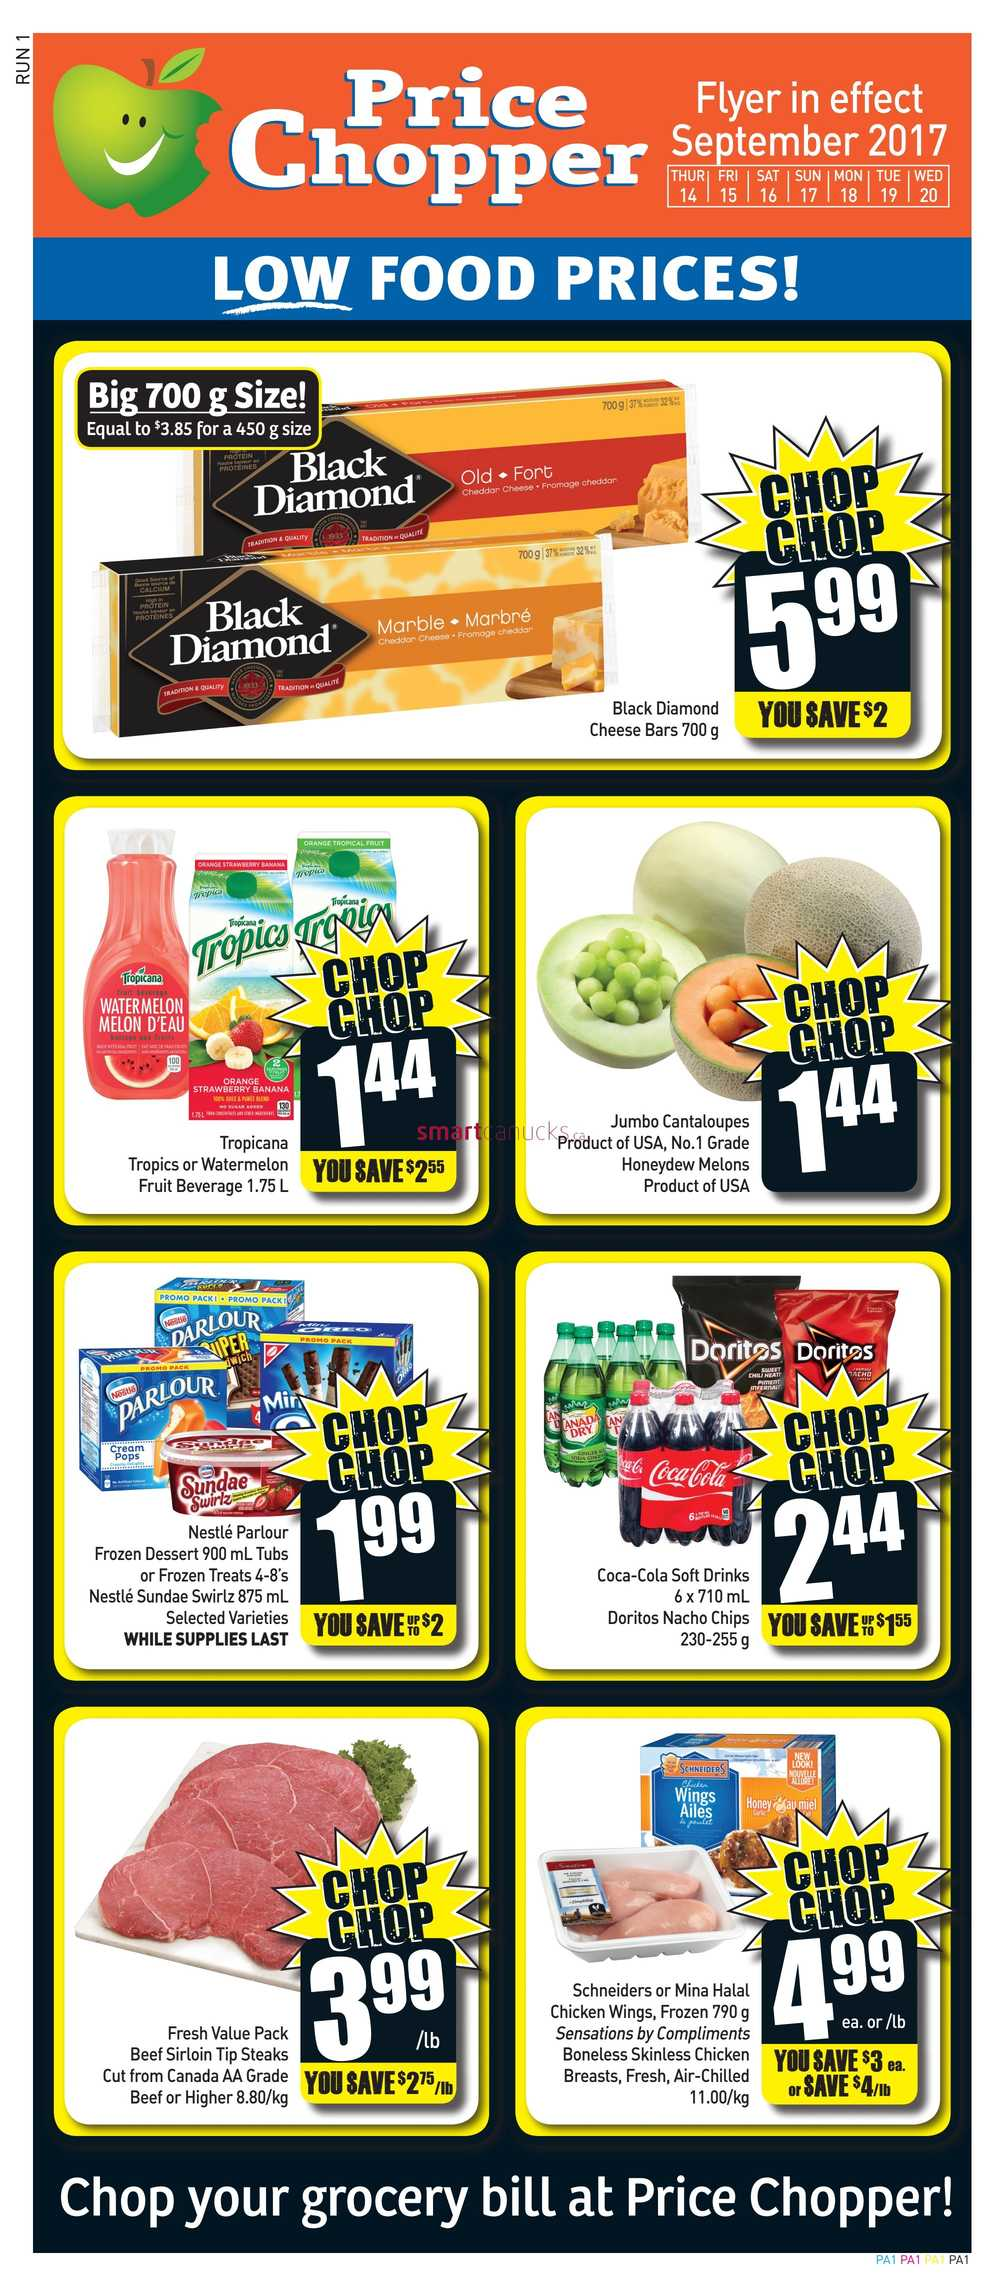 More Price Chopper Flyers